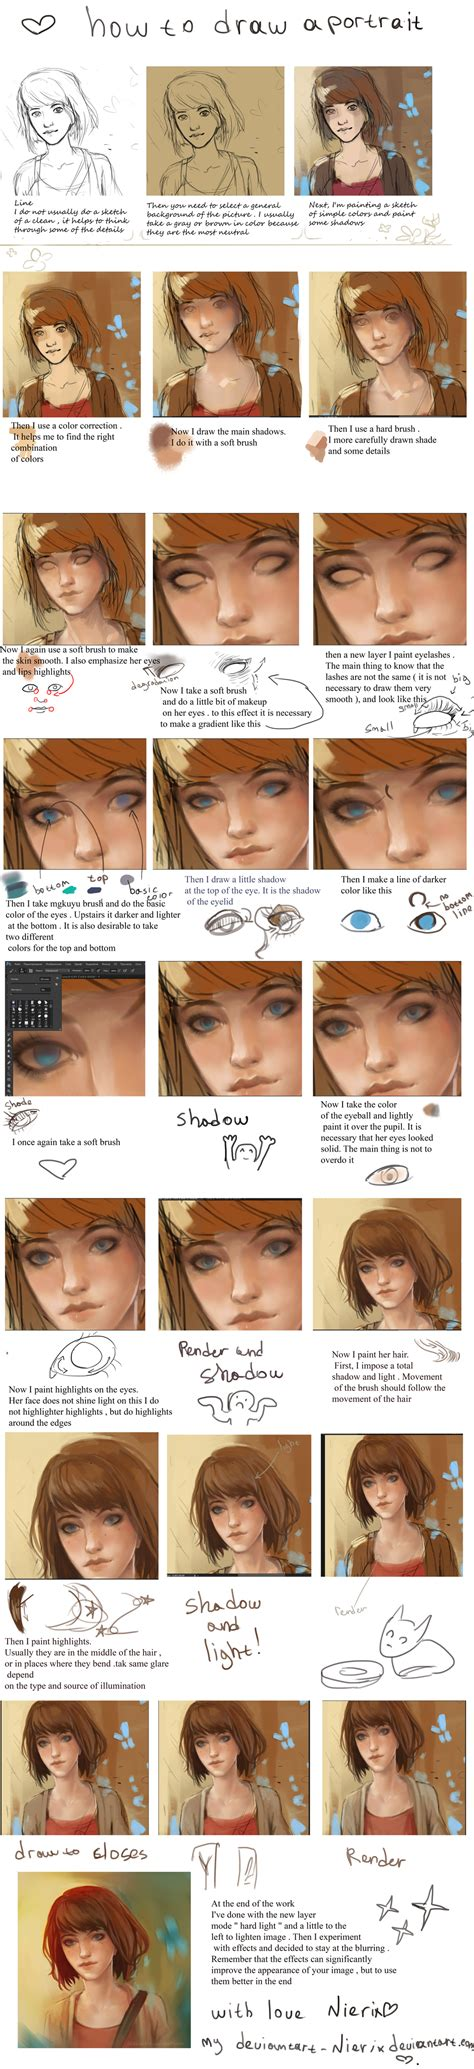 www tutorial digital painting on photoshop tutorials deviantart